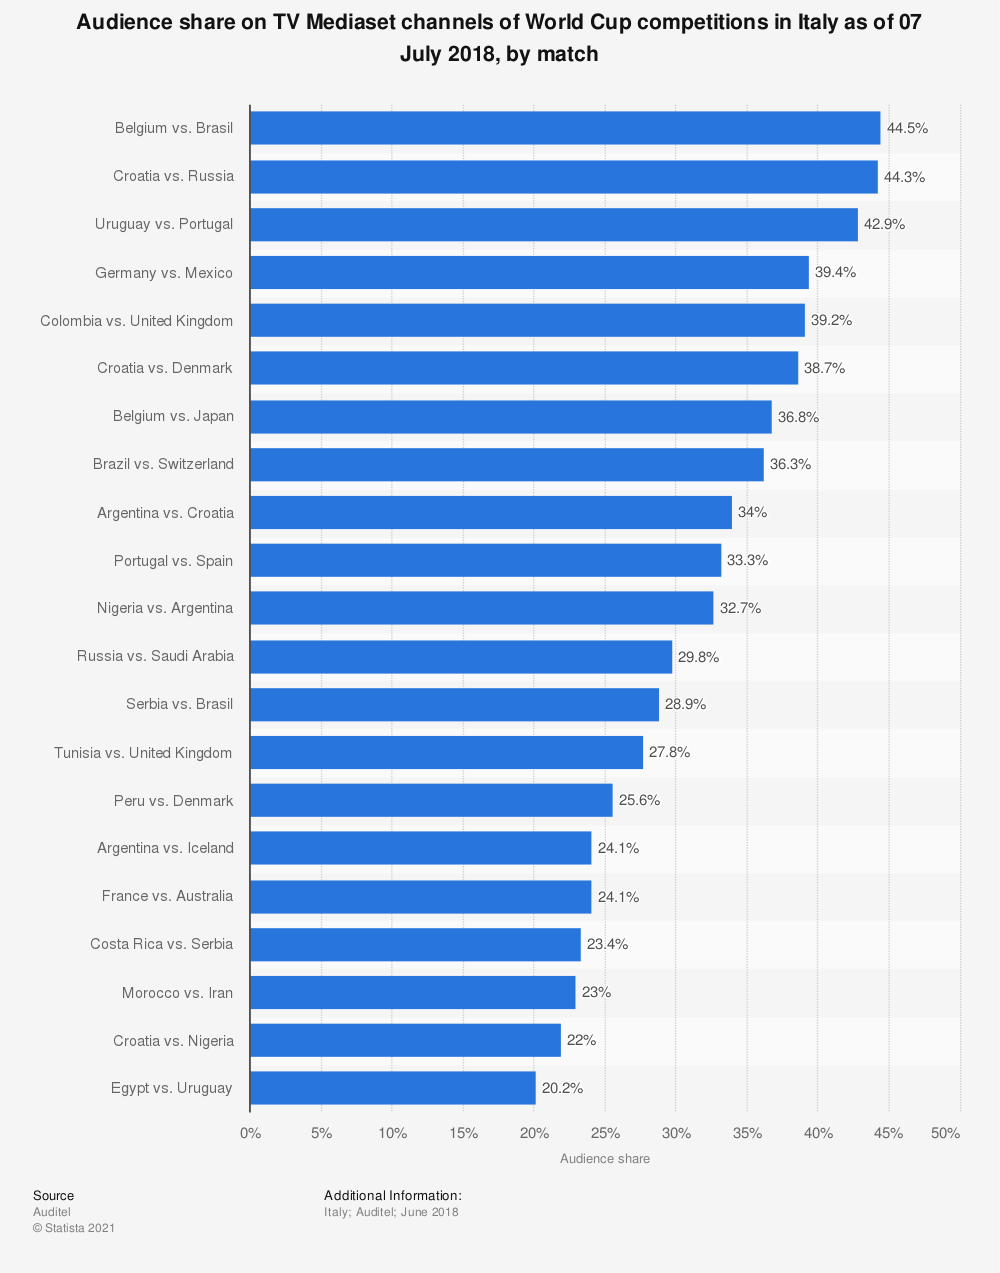 Statistic: Audience share on TV Mediaset channels of World Cup competitions in Italy as of 07 July 2018, by match | Statista